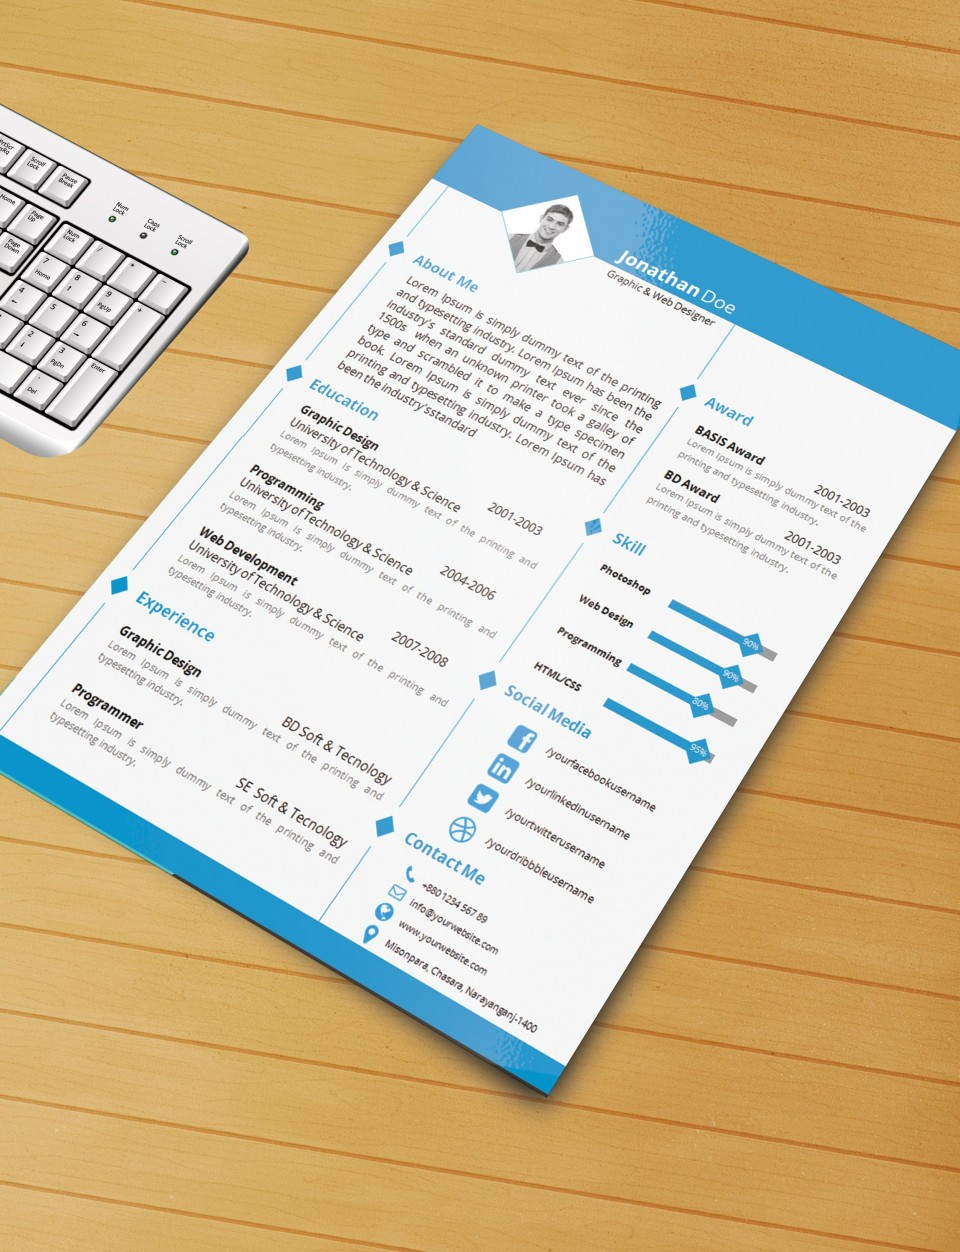 002 Frightening Microsoft Office Free Template Sample  Excel Download M Powerpoint960